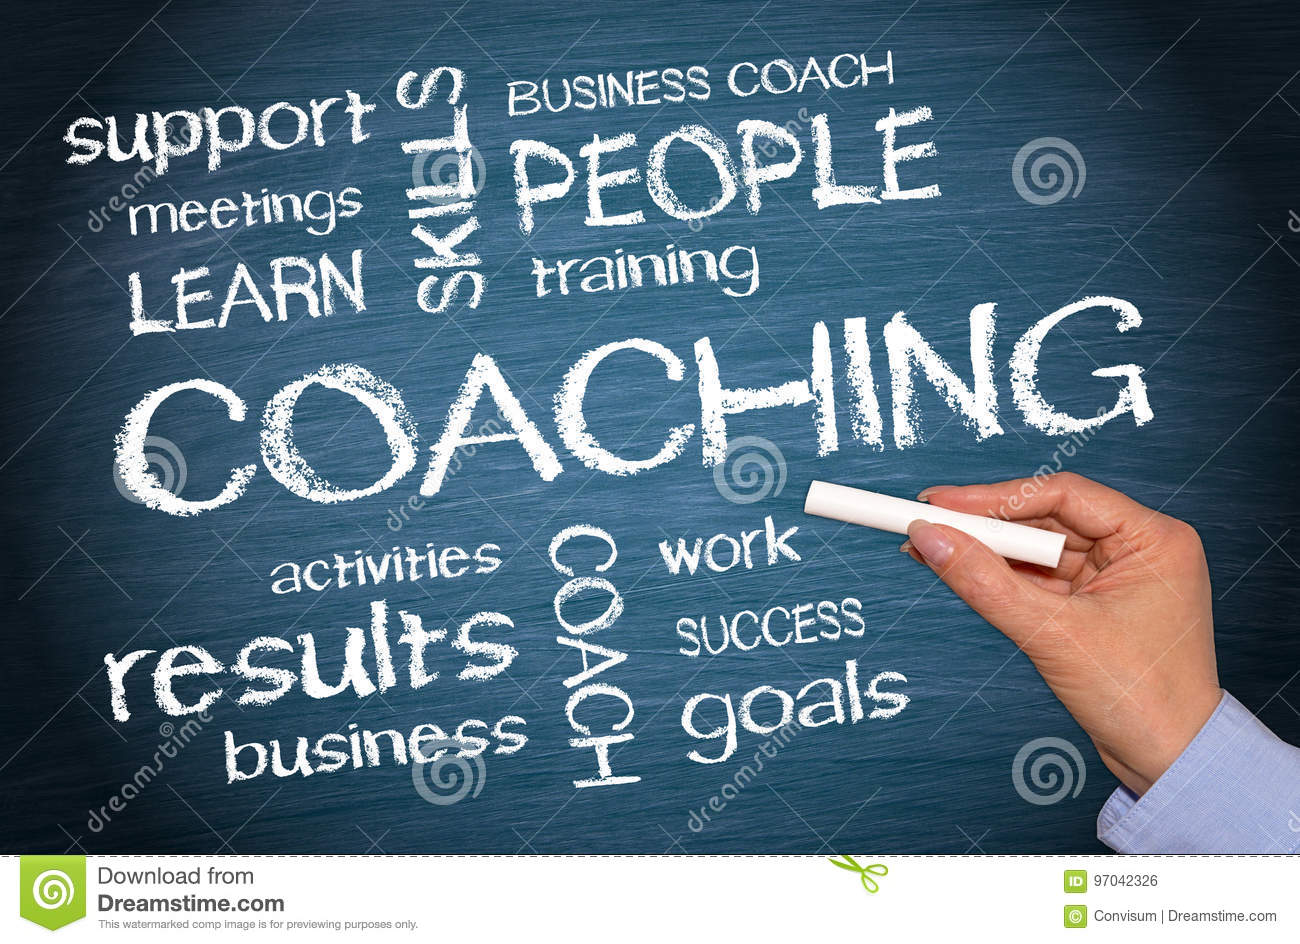 Coaching Business Concept - female hand writing text